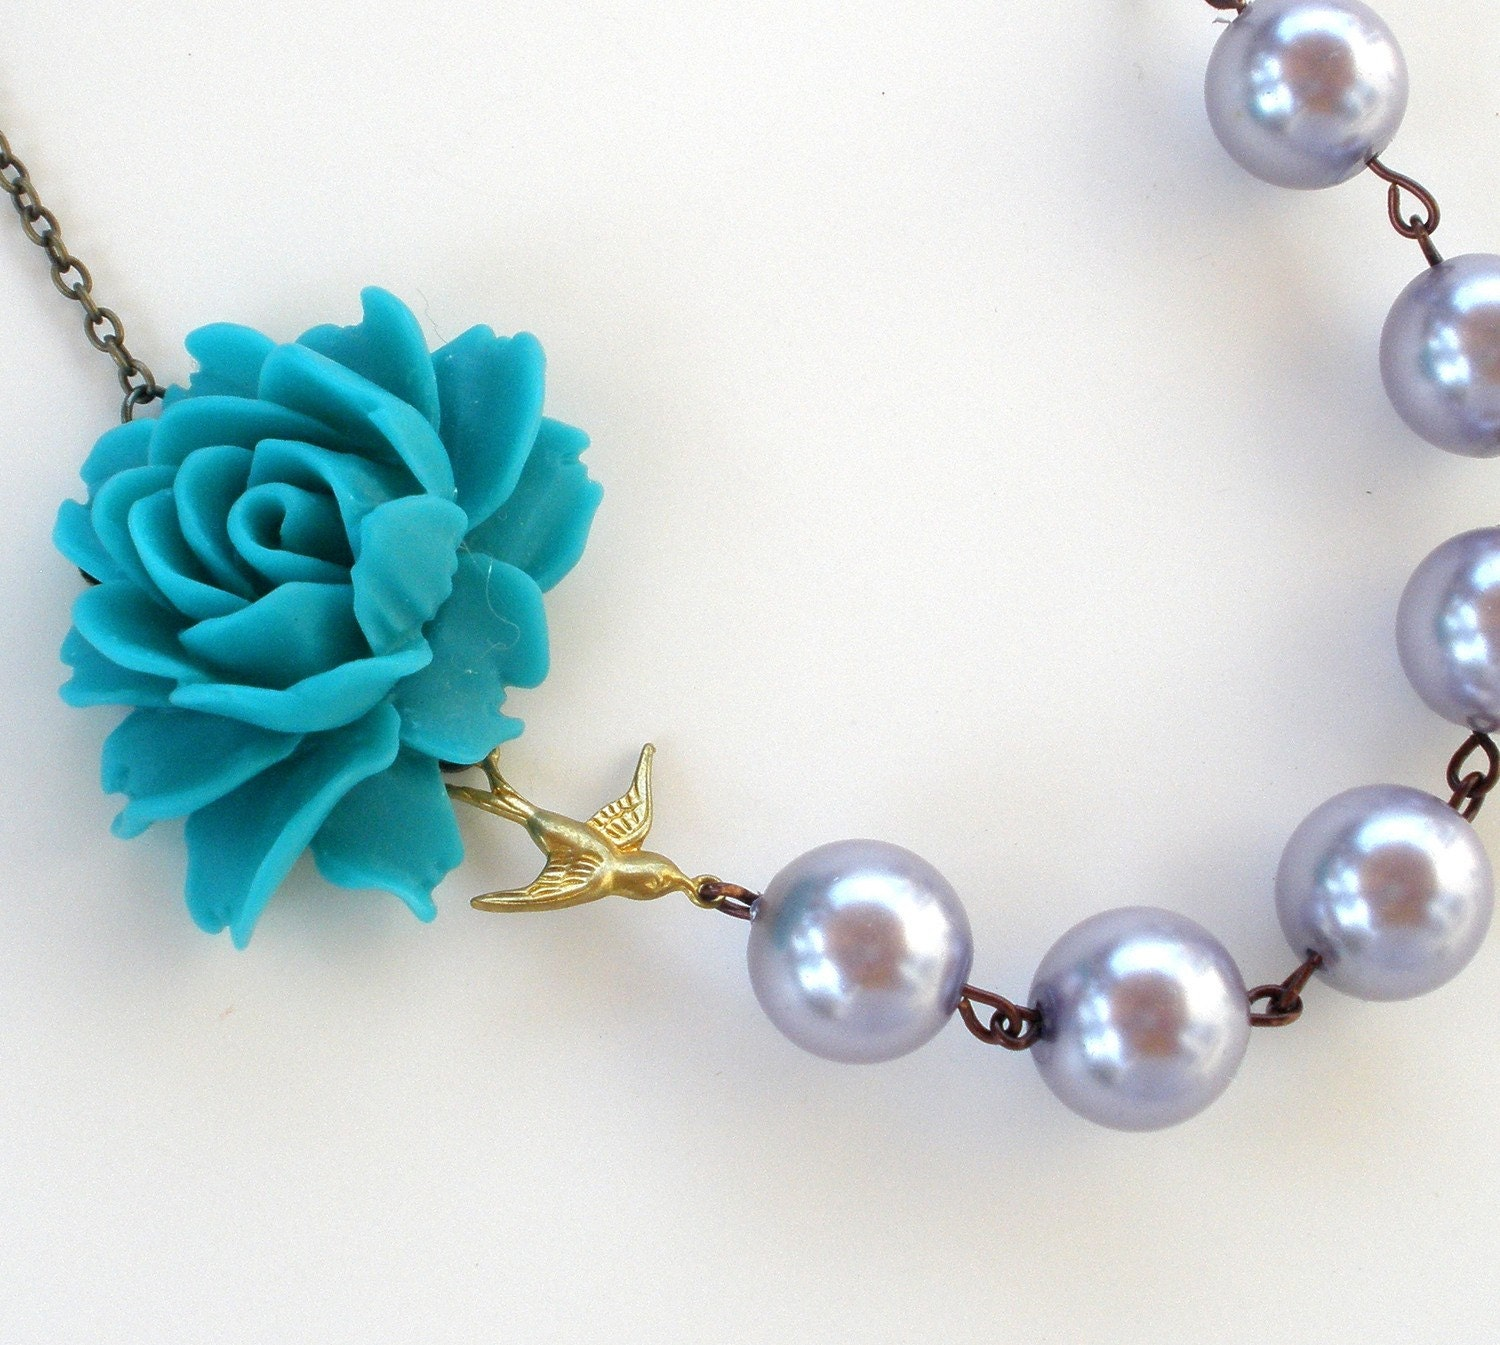 Pearl Sparrow Flower Cabochon Necklace - Teal, Grey, Silver, Bird